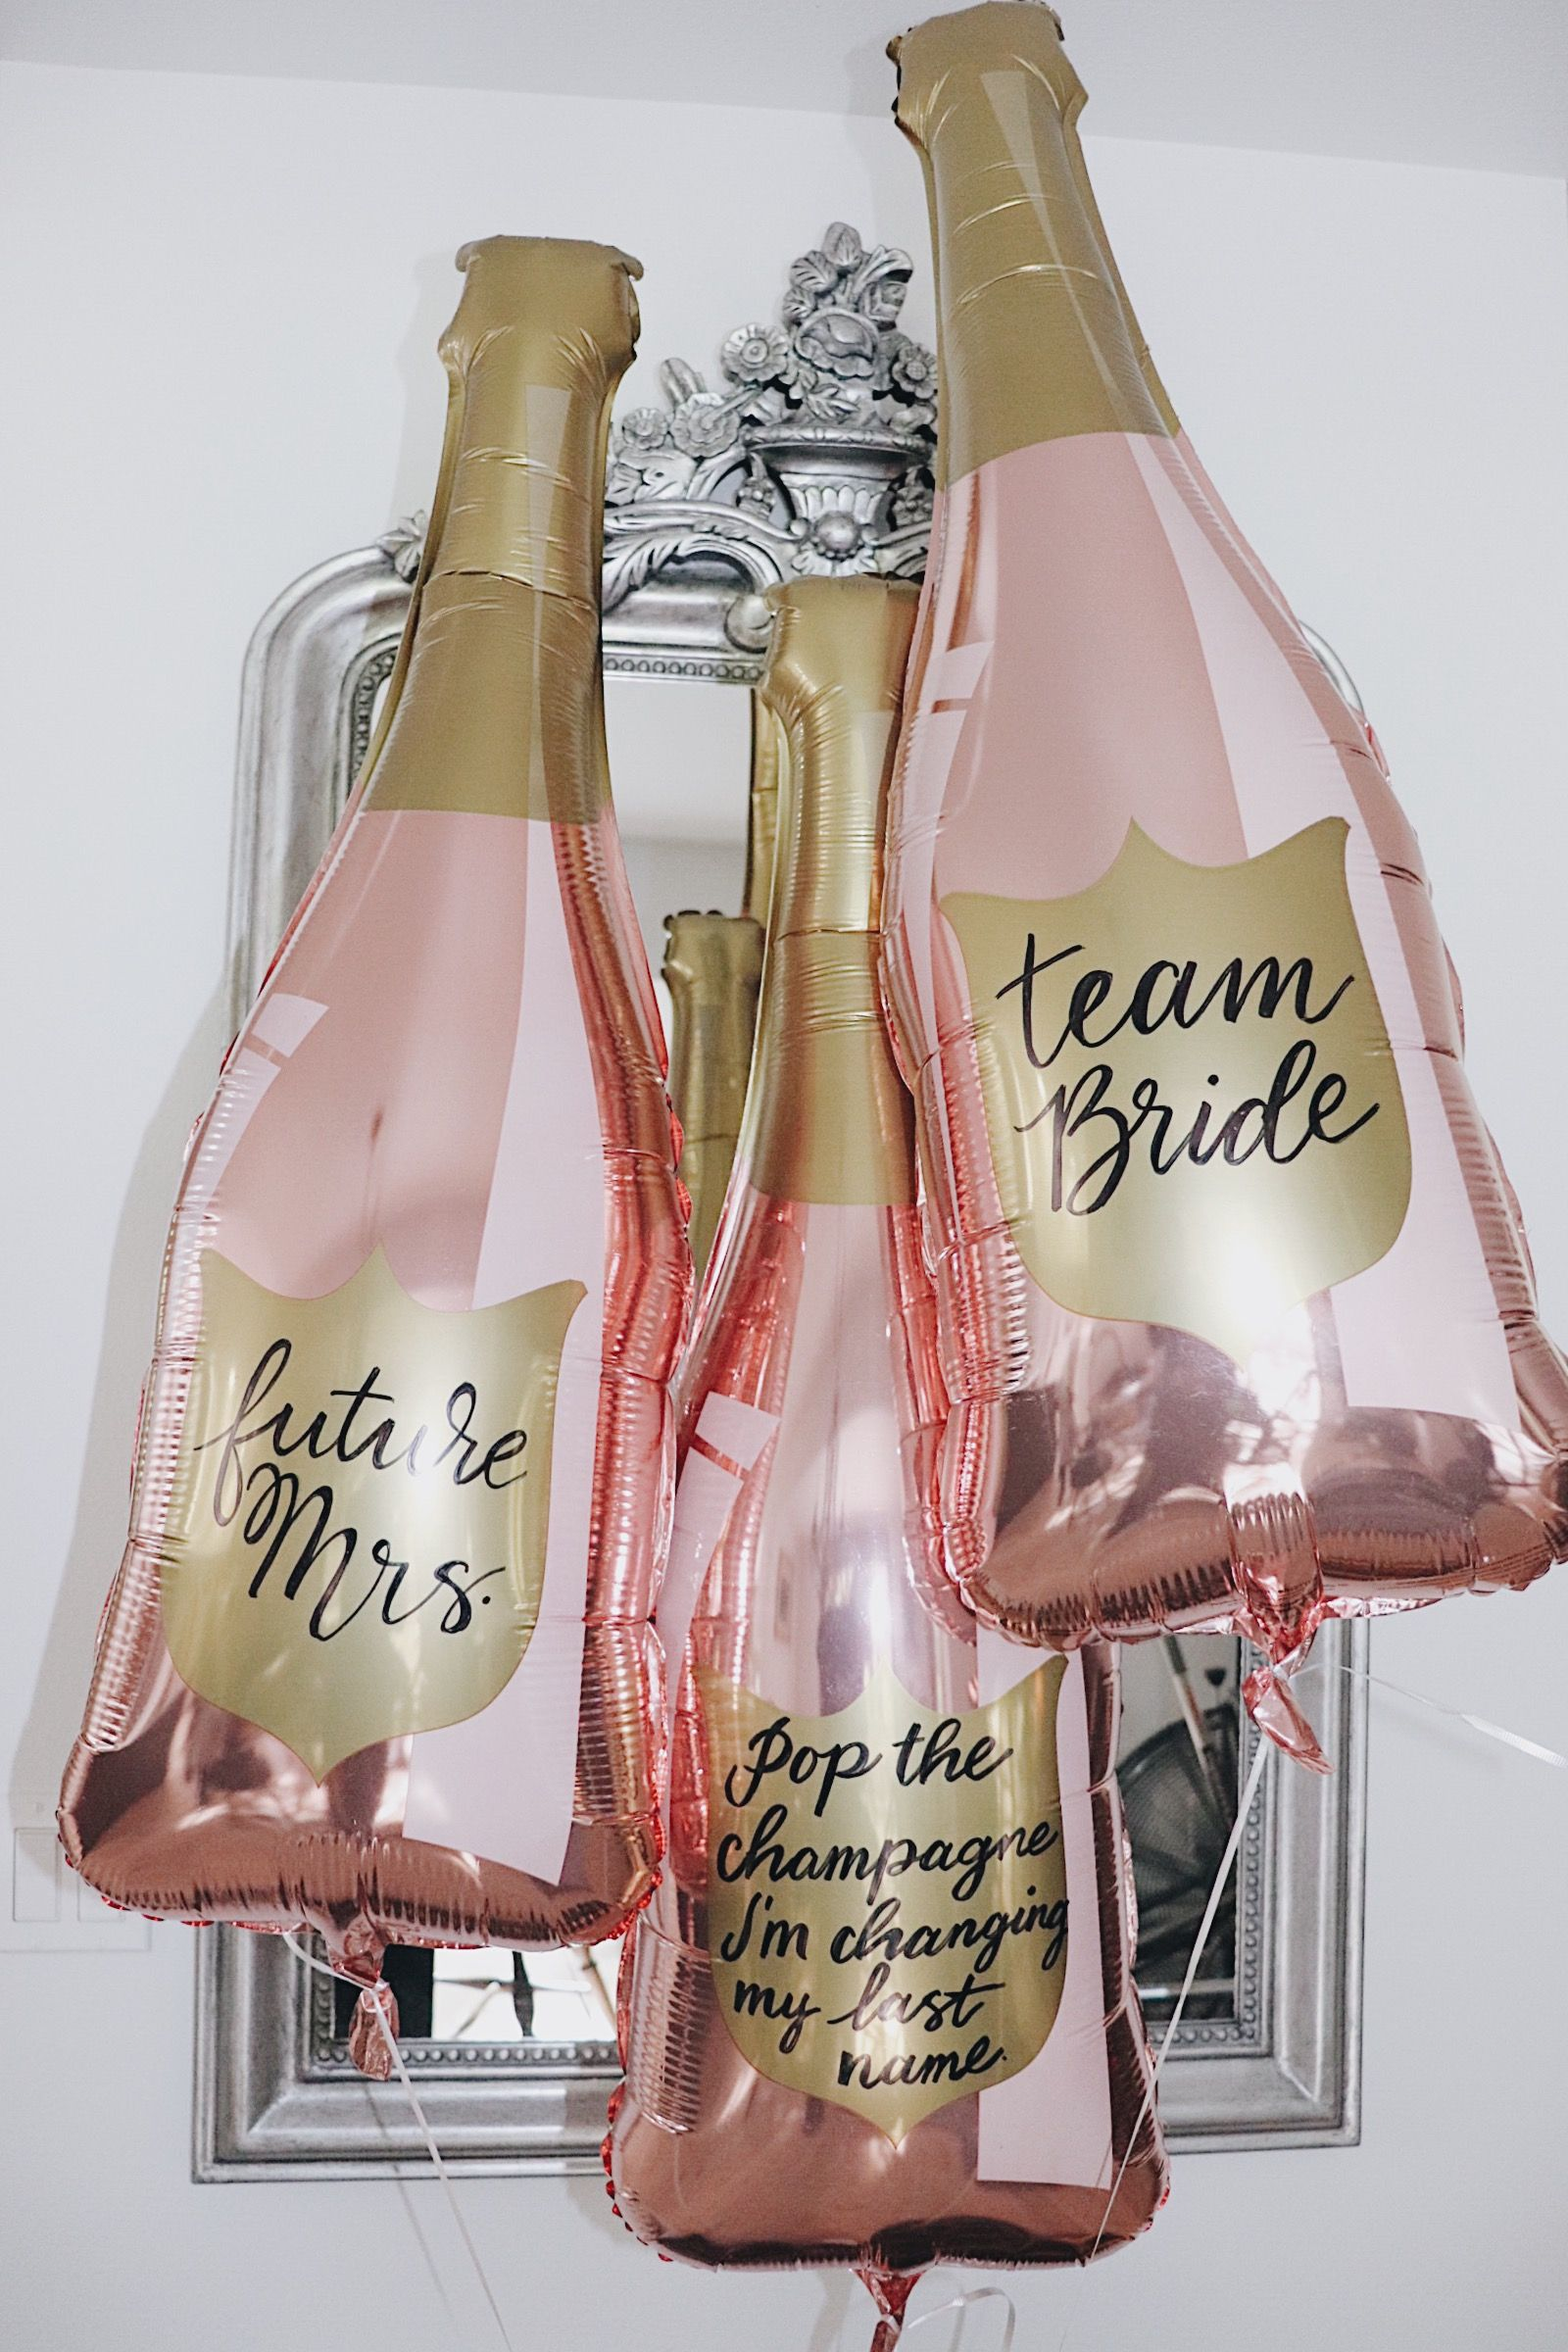 Shop Paper Confetti's exclusive customizable 36-inch rose gold champagne bottle balloon.  :: Team Bride. Future Mrs. Pop The Champagne I'm Changing My Last Name. Champagne Bottle Balloon. Rose Gold Balloons. Bachelorette Party. Bachelorette Party Supplies. Bridal Shower Decorations. Bachelorette Party Decorations. #decorationengagement